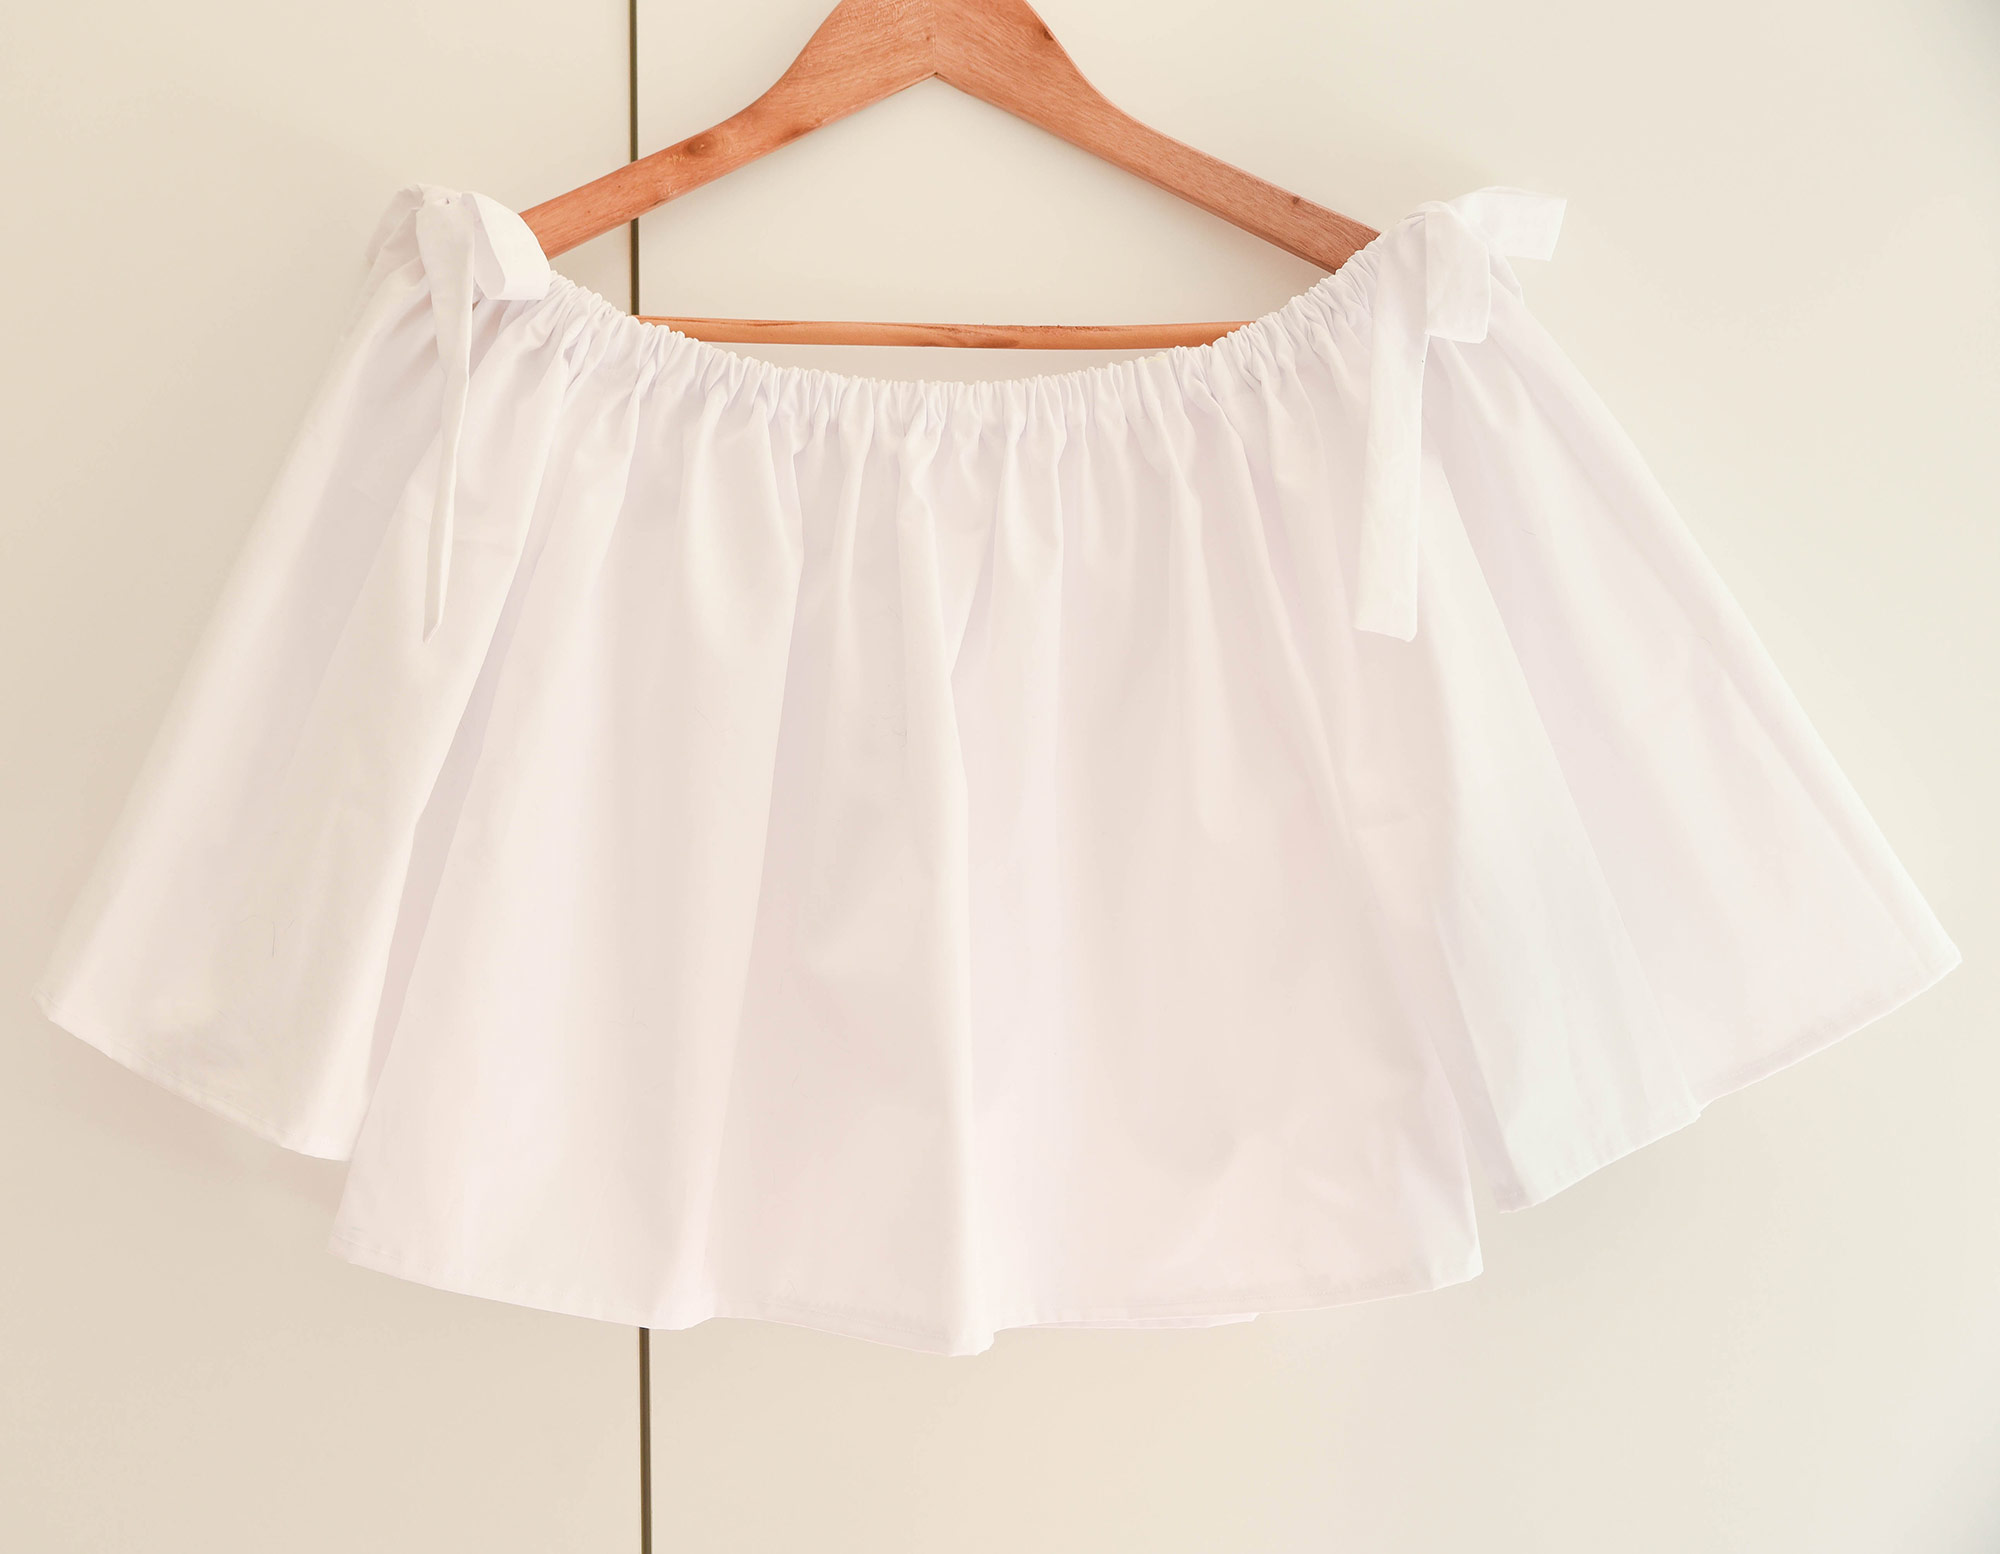 diy-tutorial-off-the-shoulder-top-and-dress-thepetitecat-top